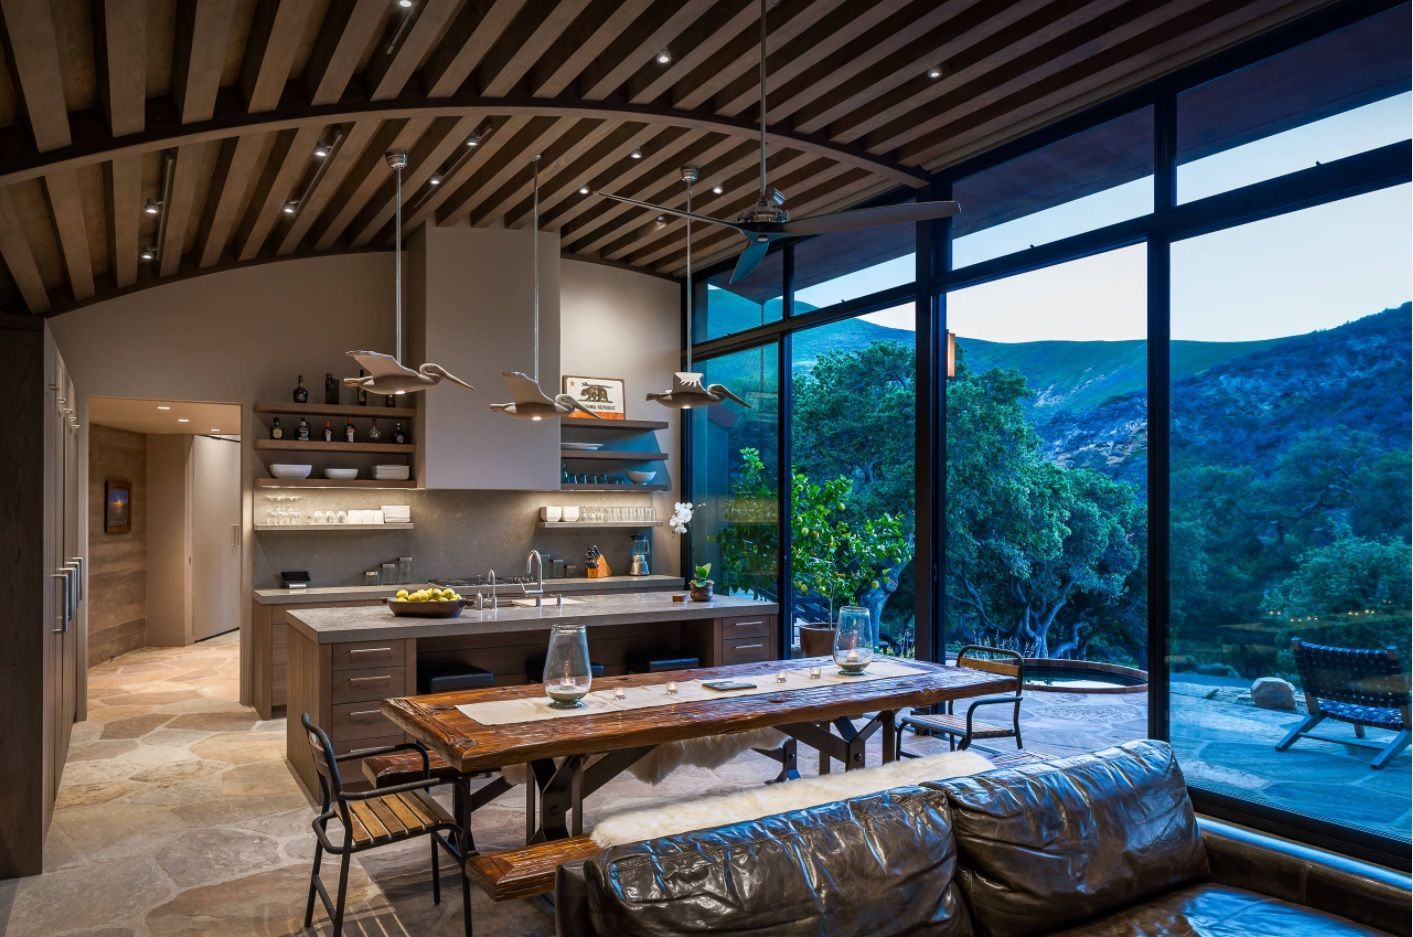 Open Kitchen Design & Interior Decoration. Unusual and adorable arrangement in the modern space